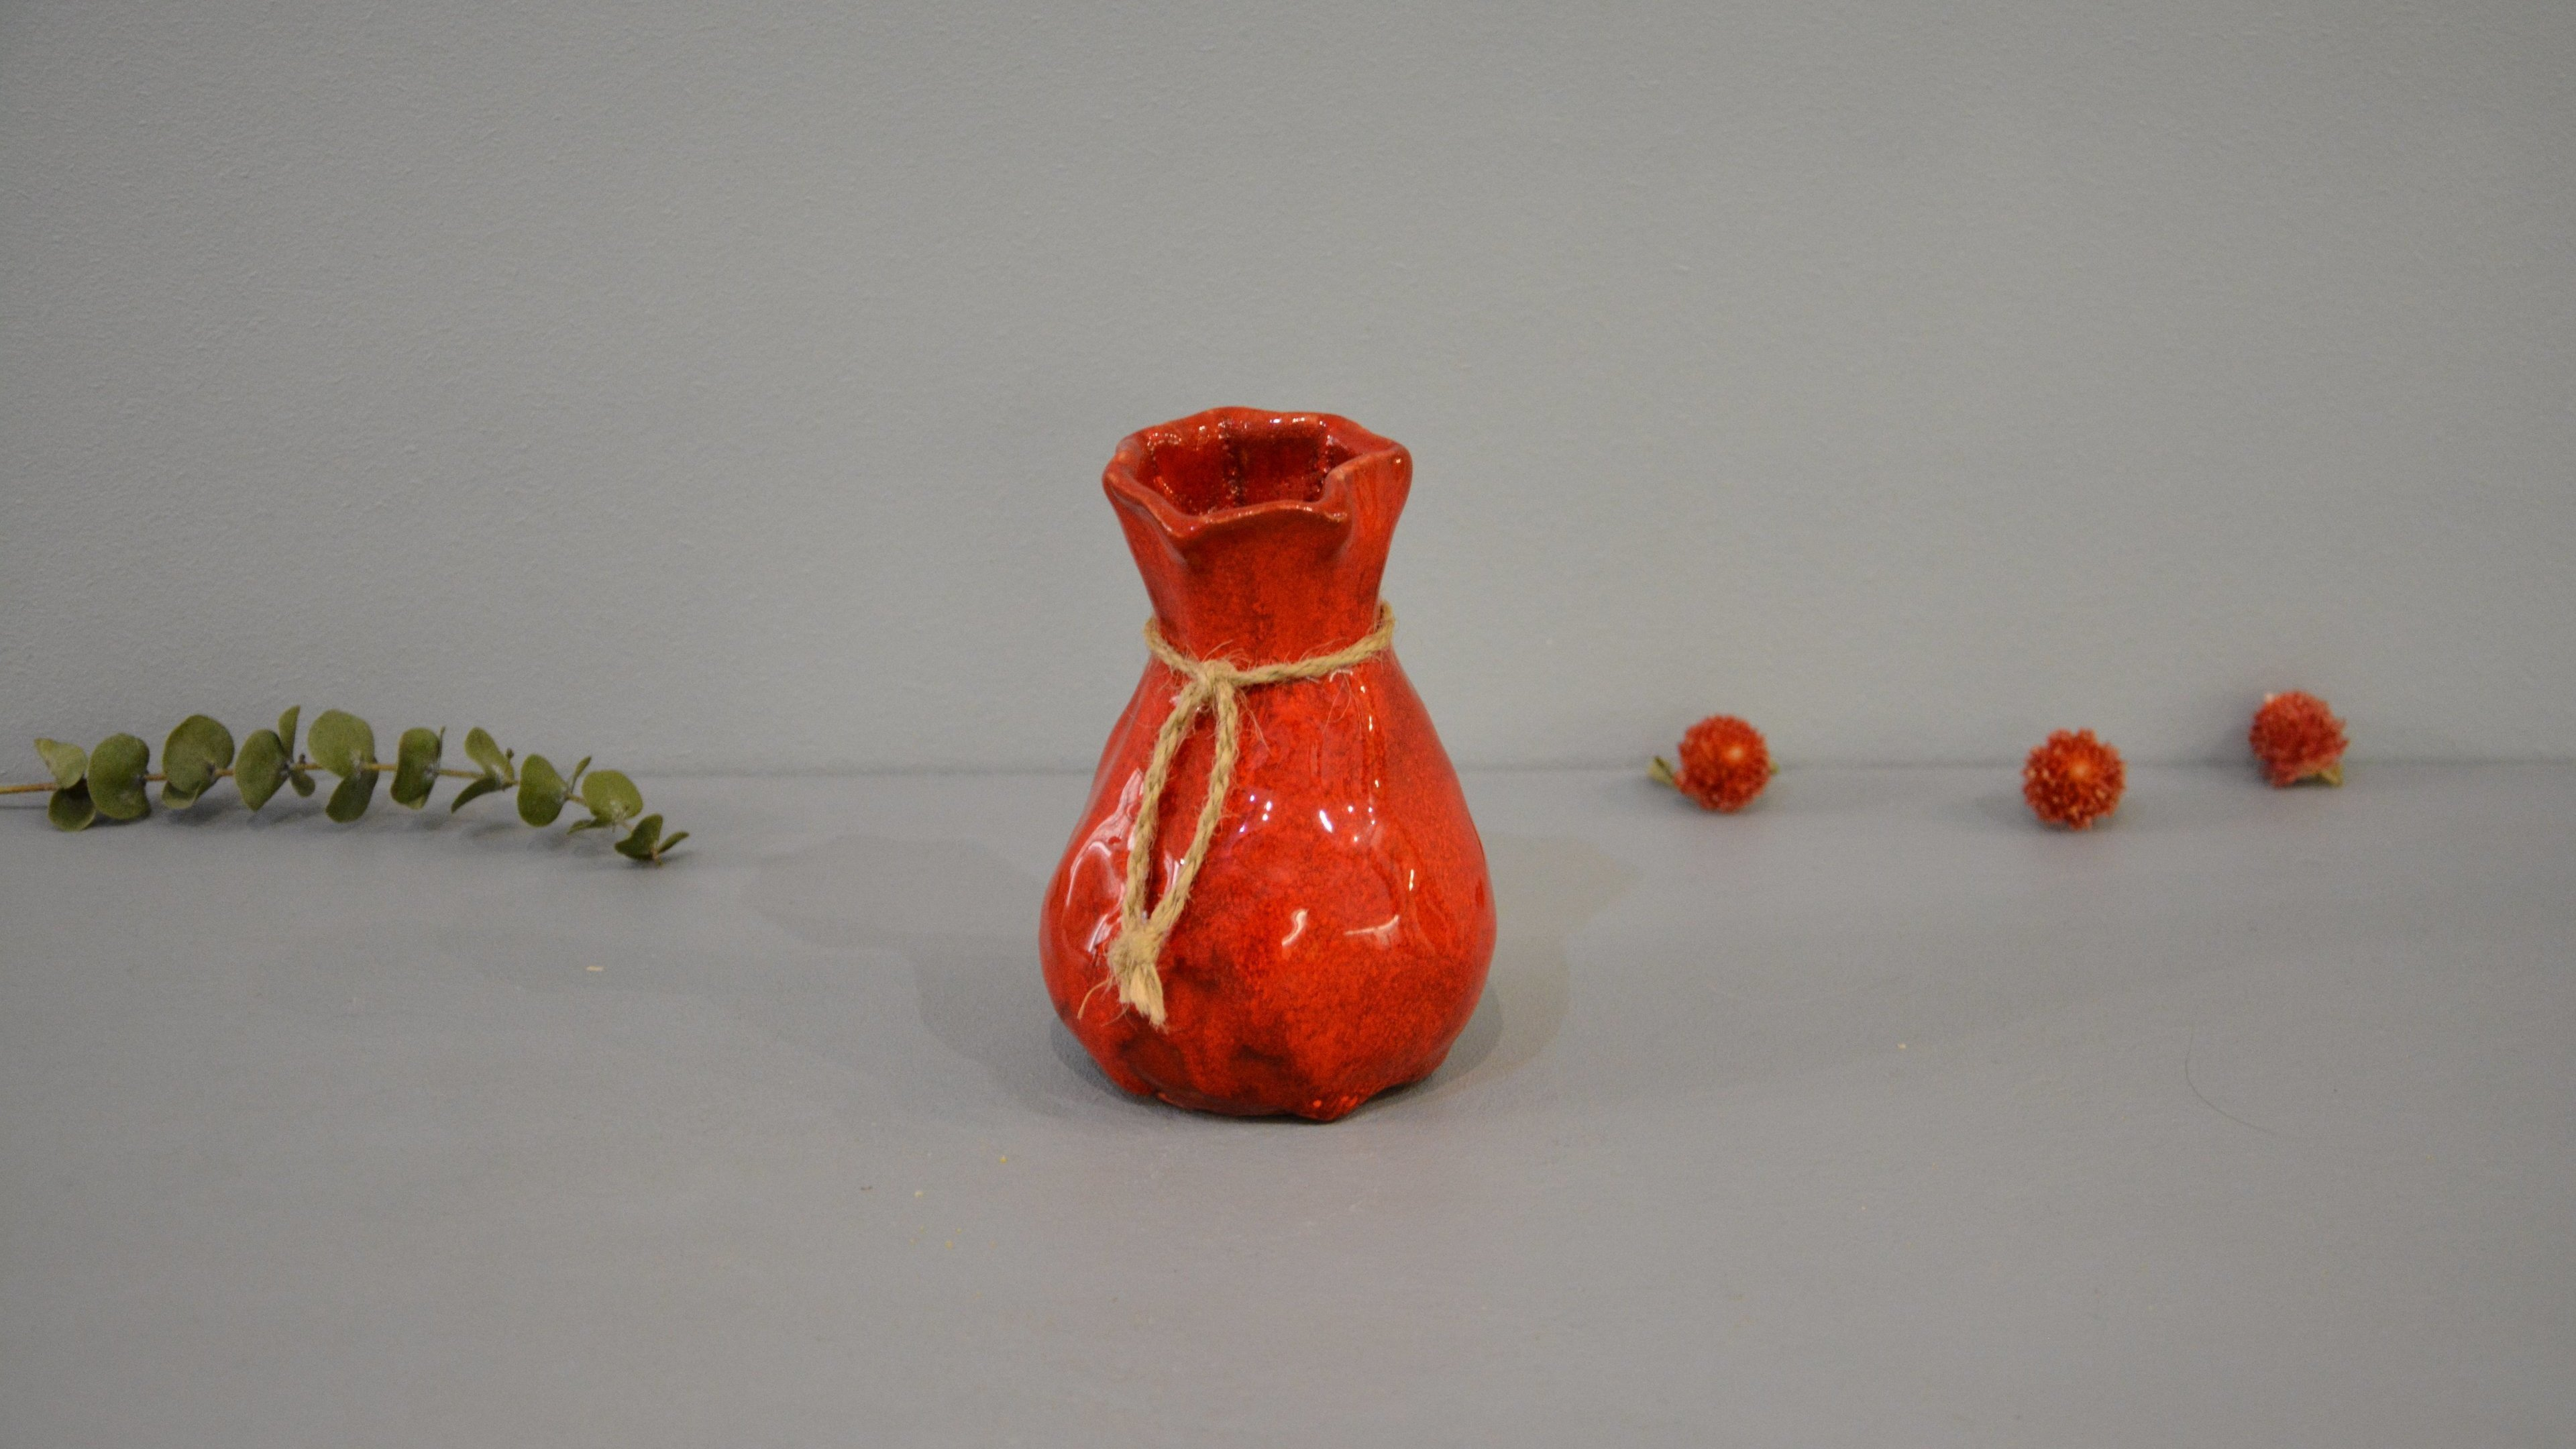 Candle vase «Red Bagful», height - 12 cm, color - red. Photo 1436-3840-2160.